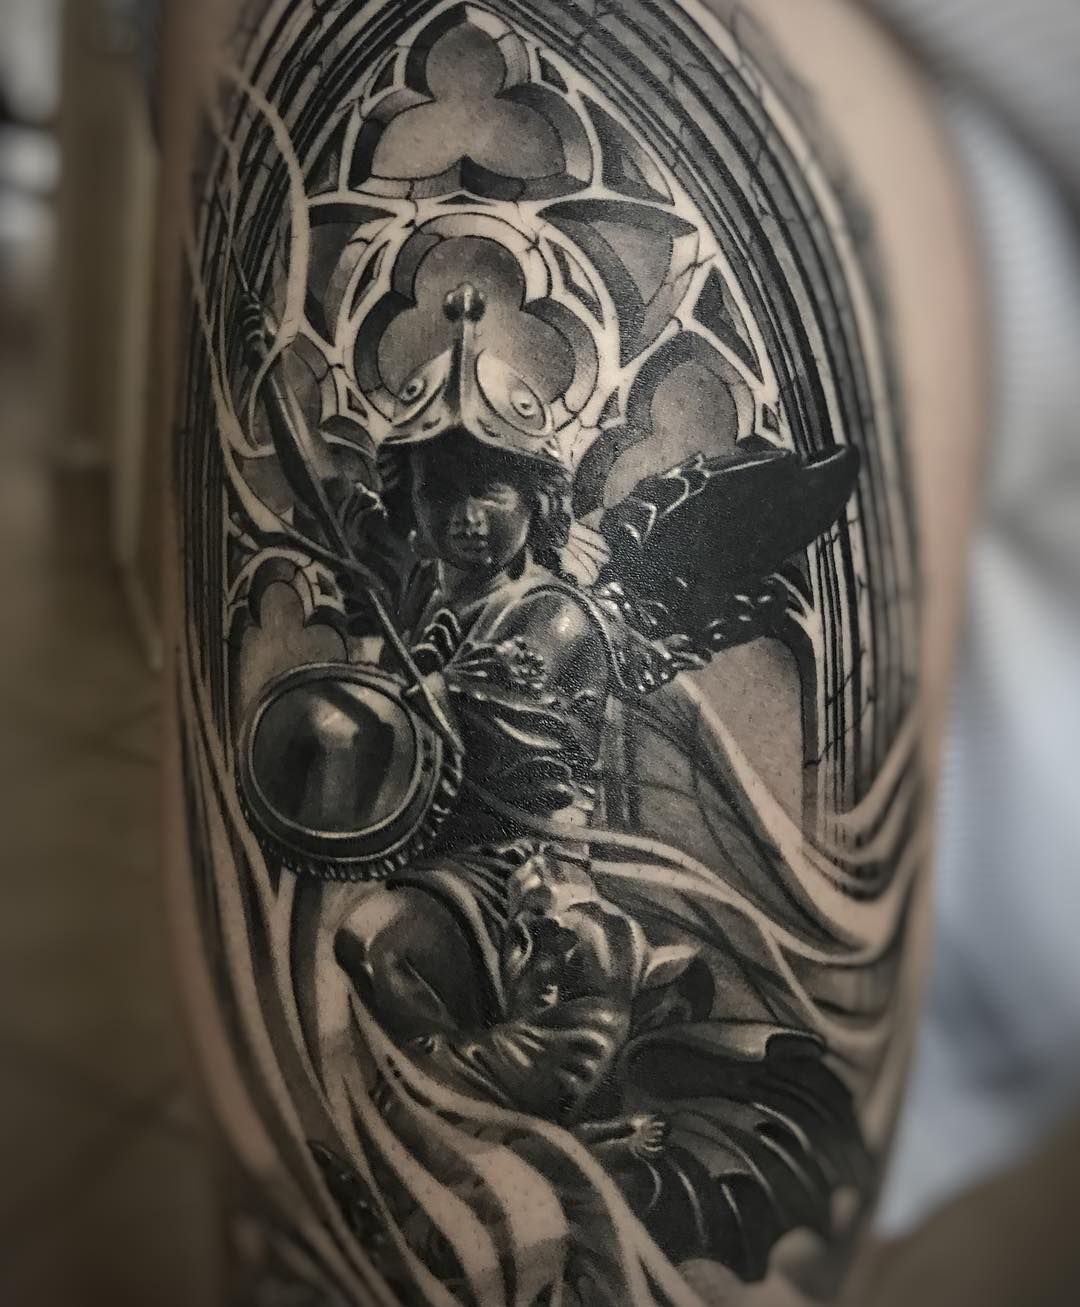 Healed photo my client sent me. This is on the quad, looking forward to continuing this project!! Thanks for looking. #davidreveles #tattoospooky #art #artist #legtattoo #blackandgrey #ink #inksav #theinkedlife #bnginksociety #blackandgreytattooleague #d_workd_of_ink #workinprogress